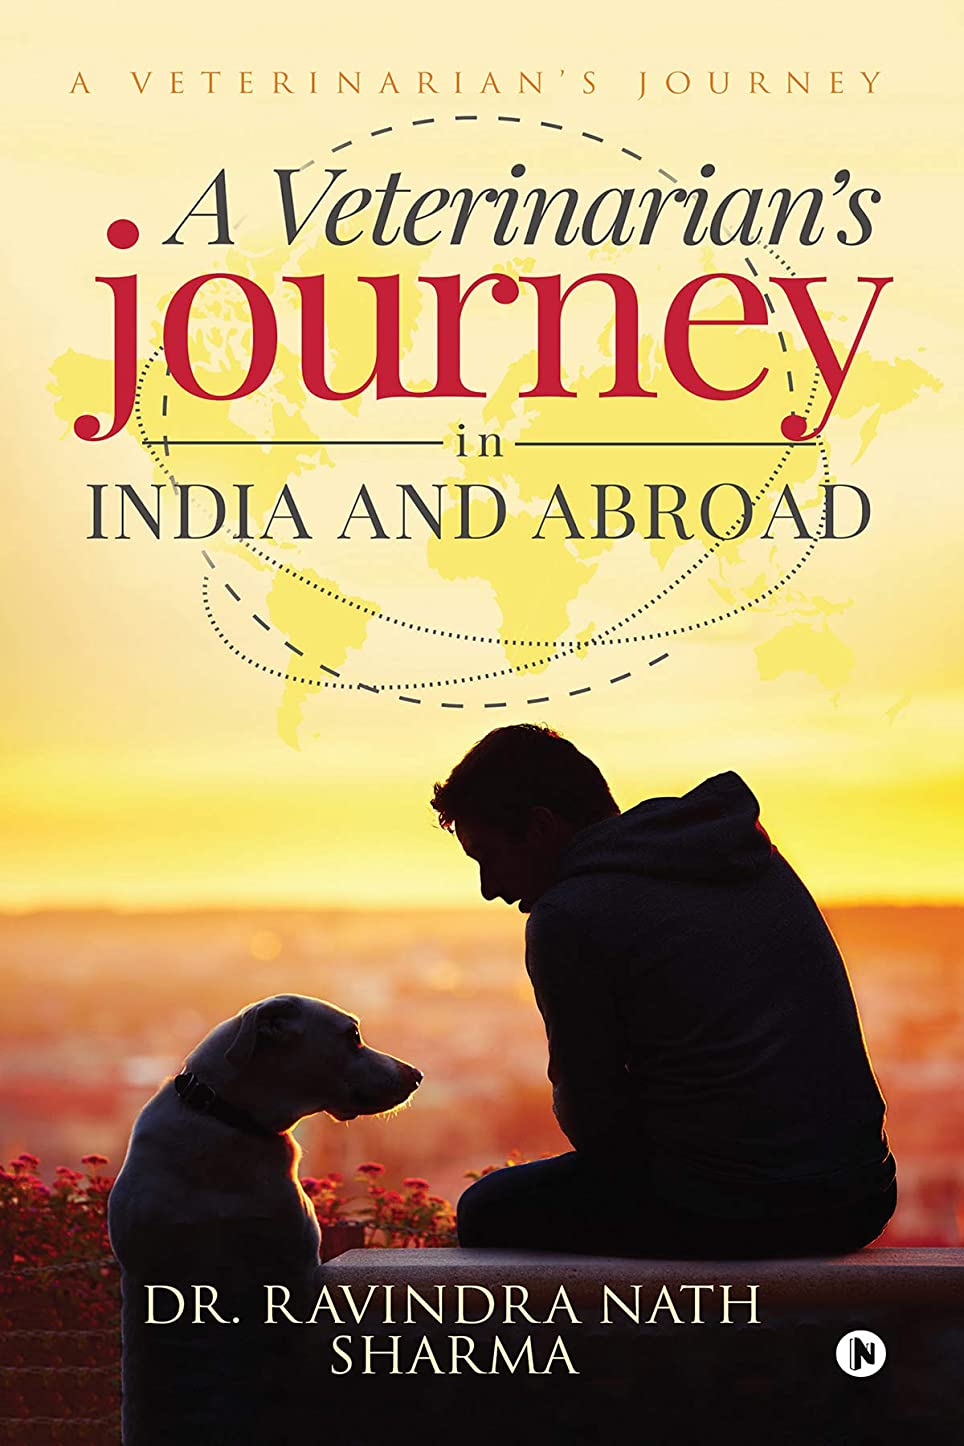 満足軽蔑するエゴマニアA Veterinarian's journey in India and abroad (English Edition)